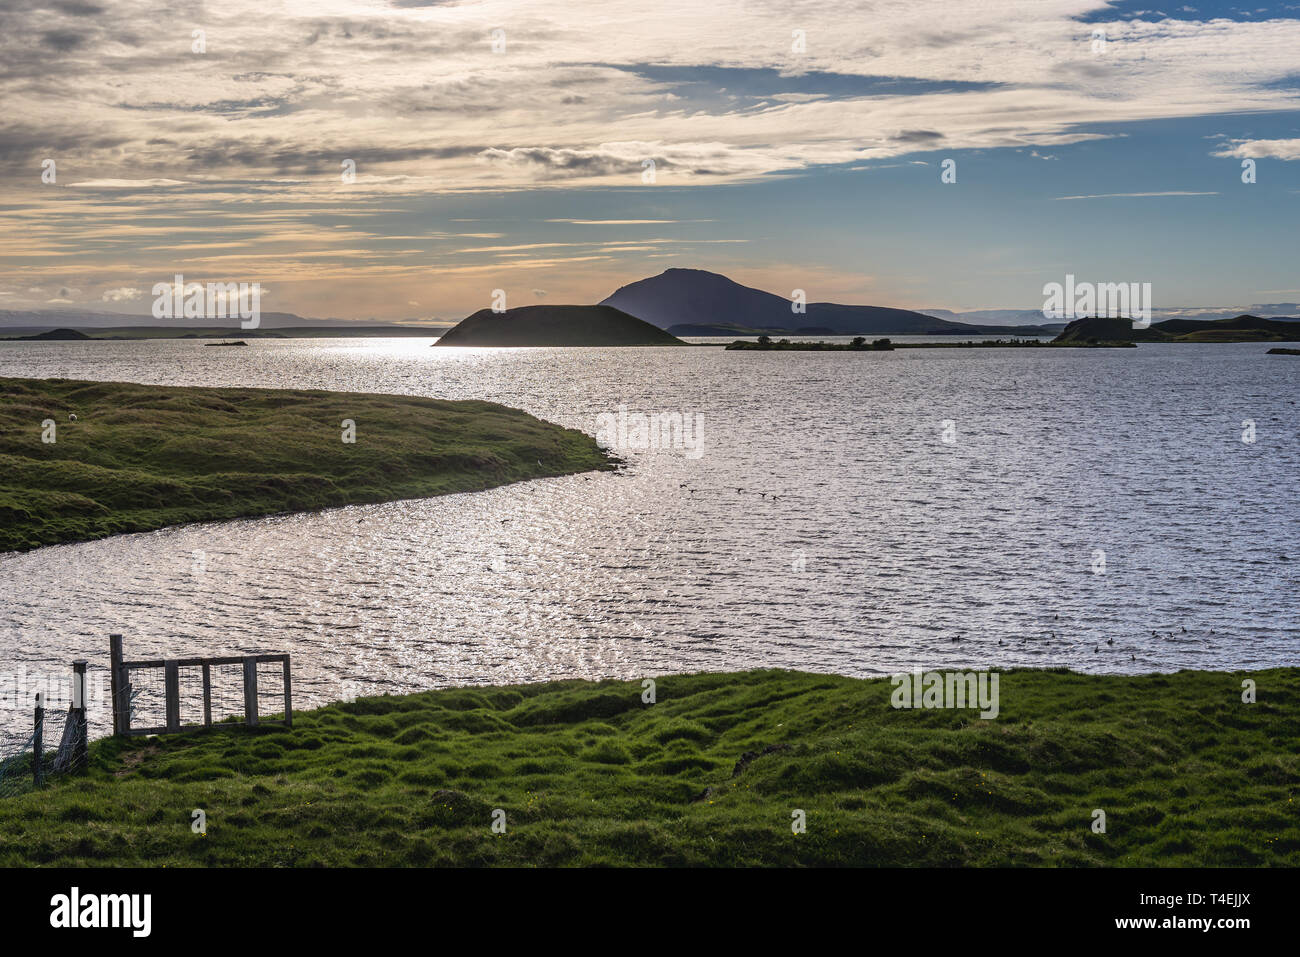 Road 848 along Lake Myvatn near Reykjahlid village in Iceland - Stock Image